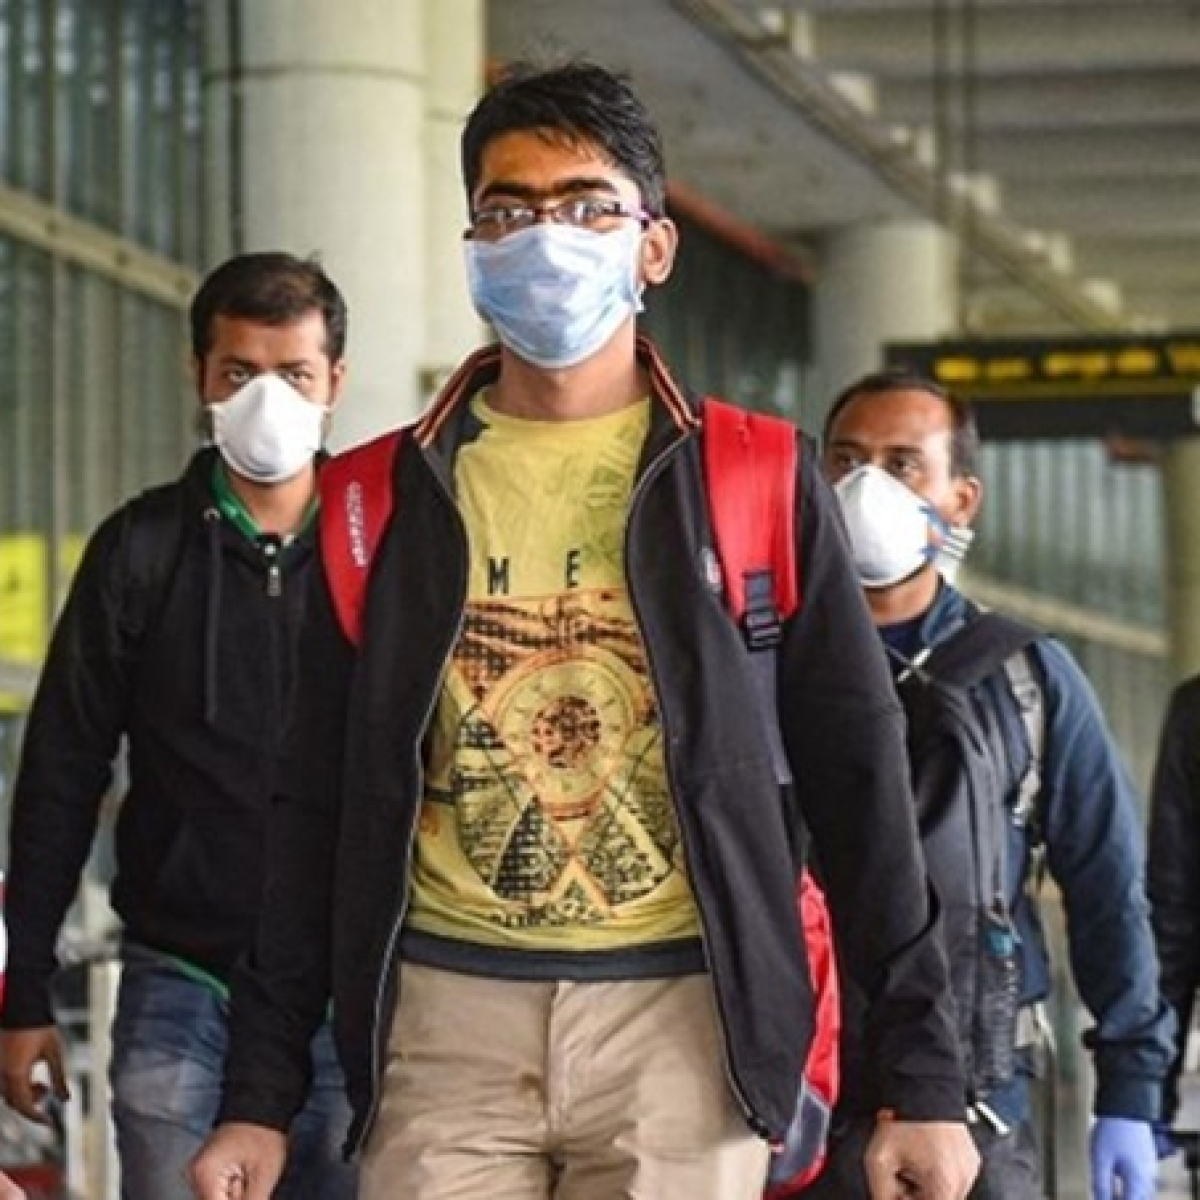 Offload passengers not wearing masks properly: Delhi HC tells DGCA